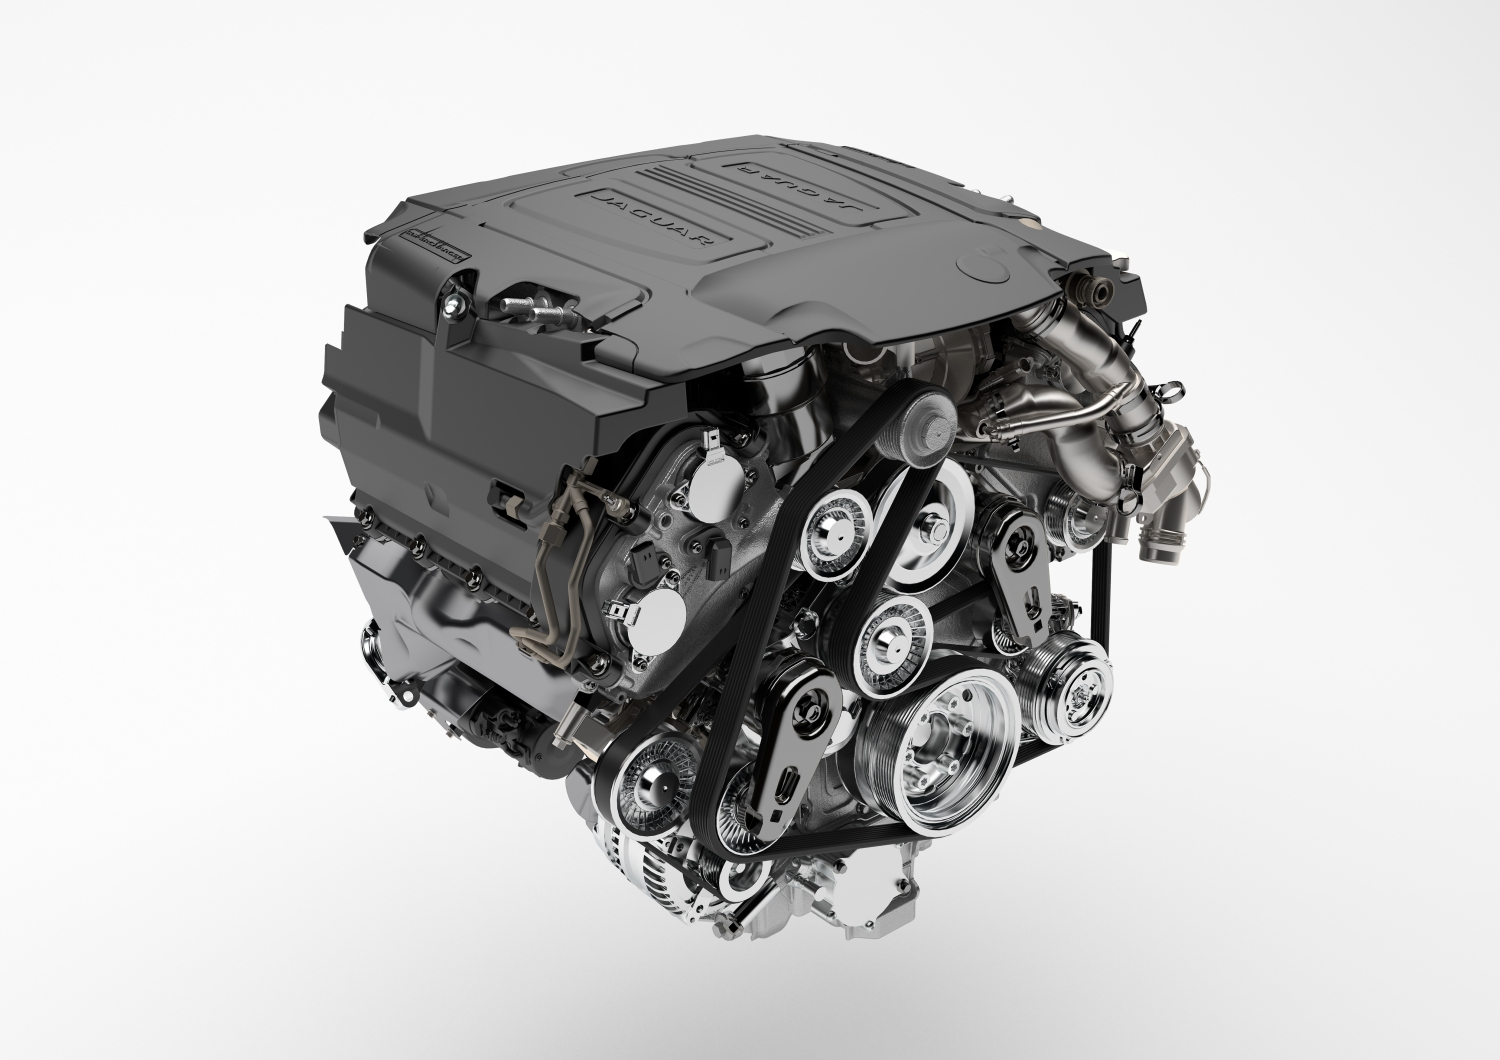 Jaguar Reveals the All-New F-PACE - V6 Supercharged Engine